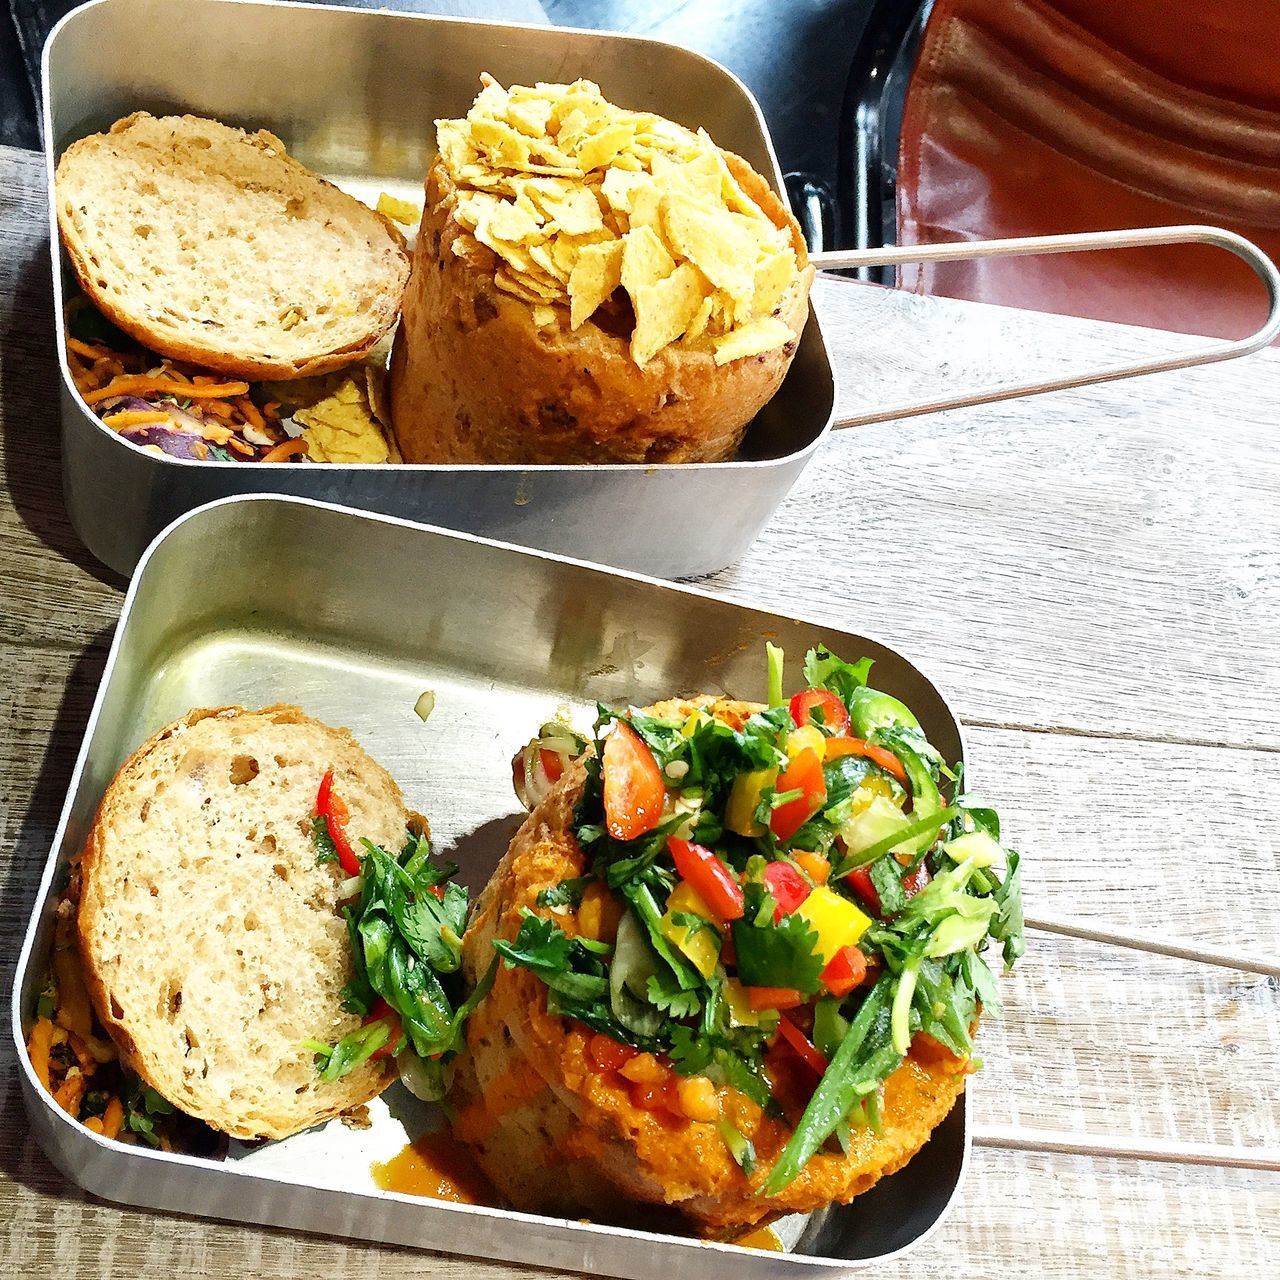 South African Food Southafrica Foodporn Ilovefood Germaninlondon Gayfood Gay Wonderful World Ilovelife Soho